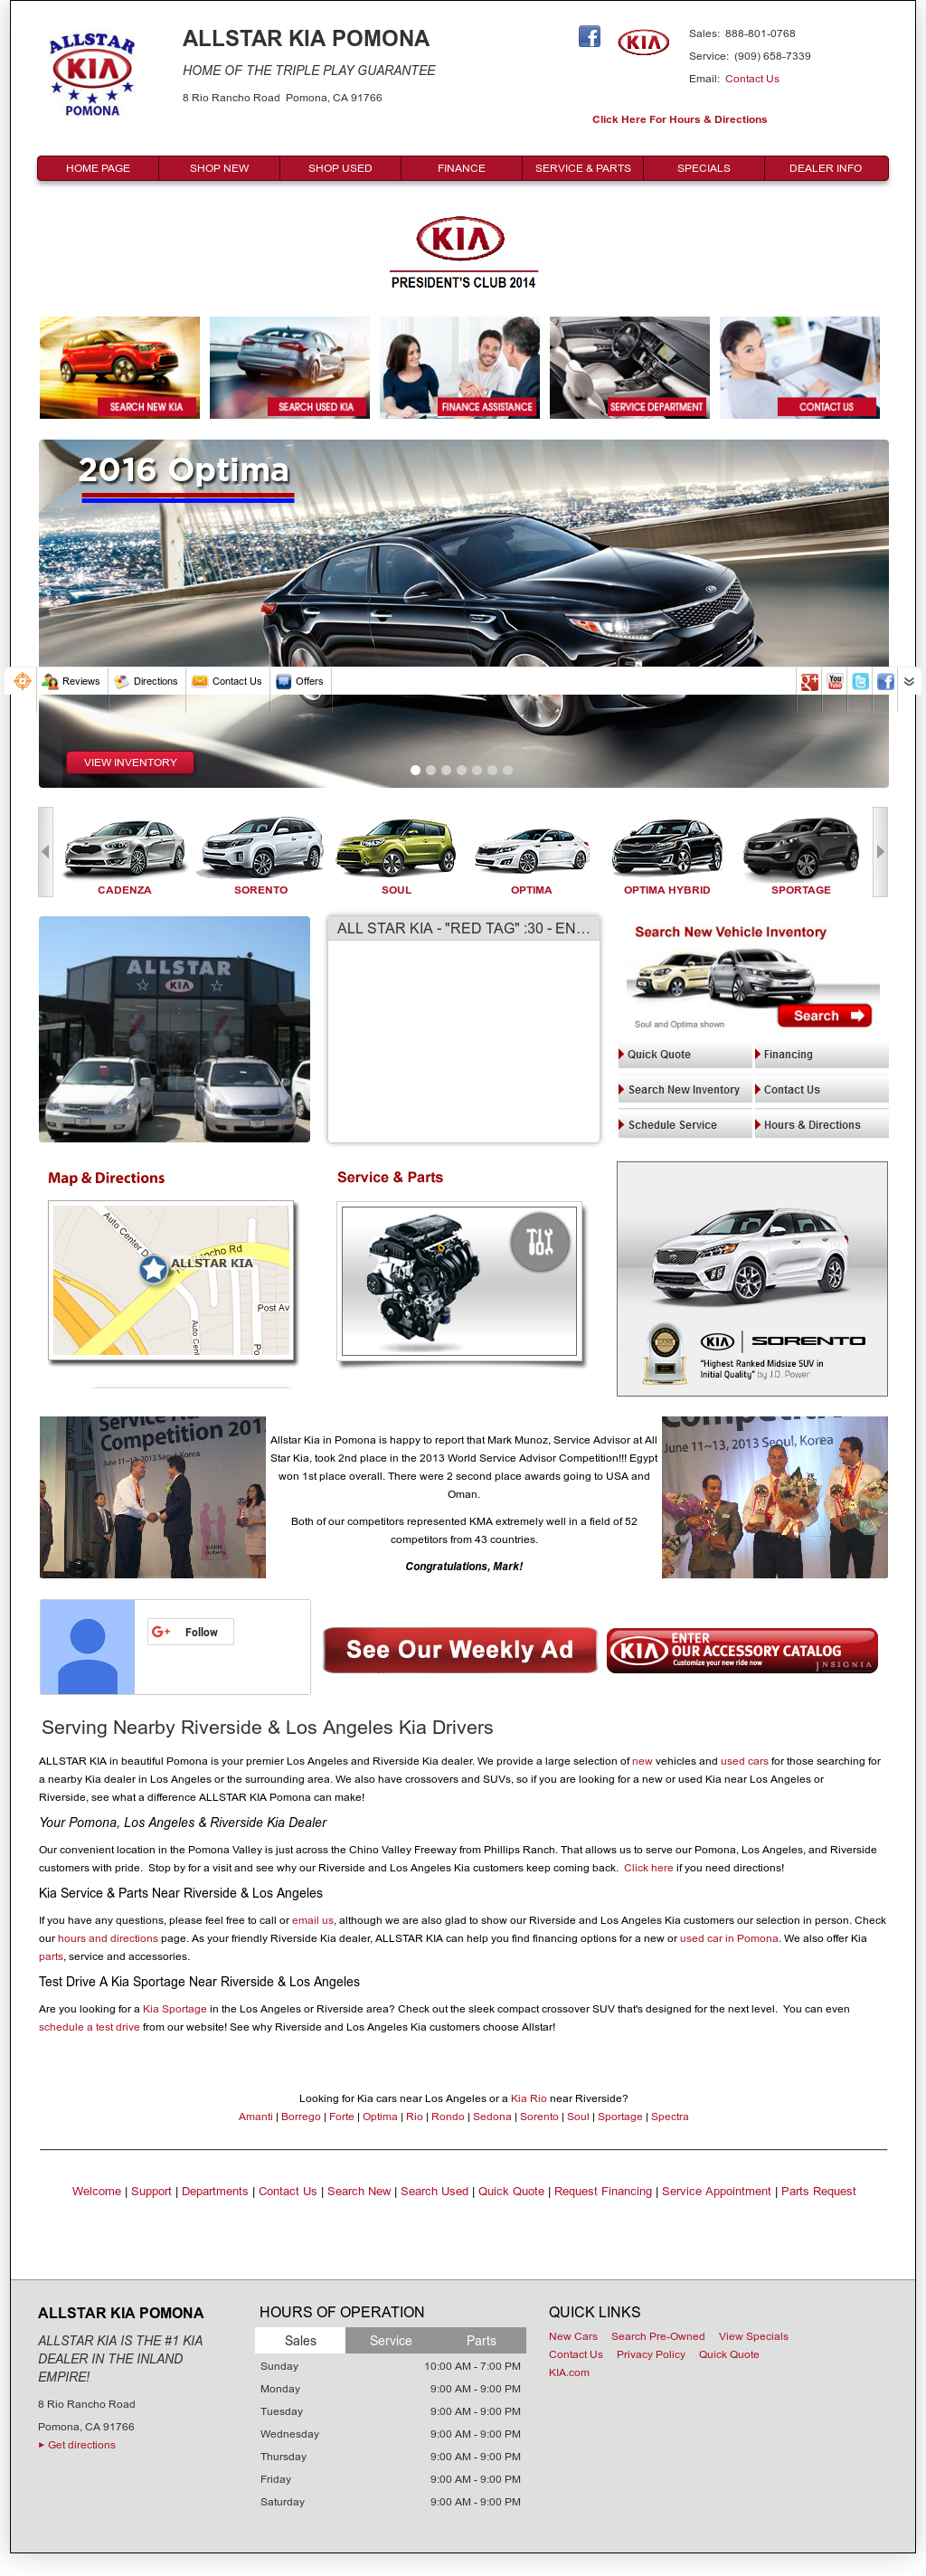 Exceptional Allstar Kia Pomona Competitors, Revenue And Employees   Owler Company  Profile